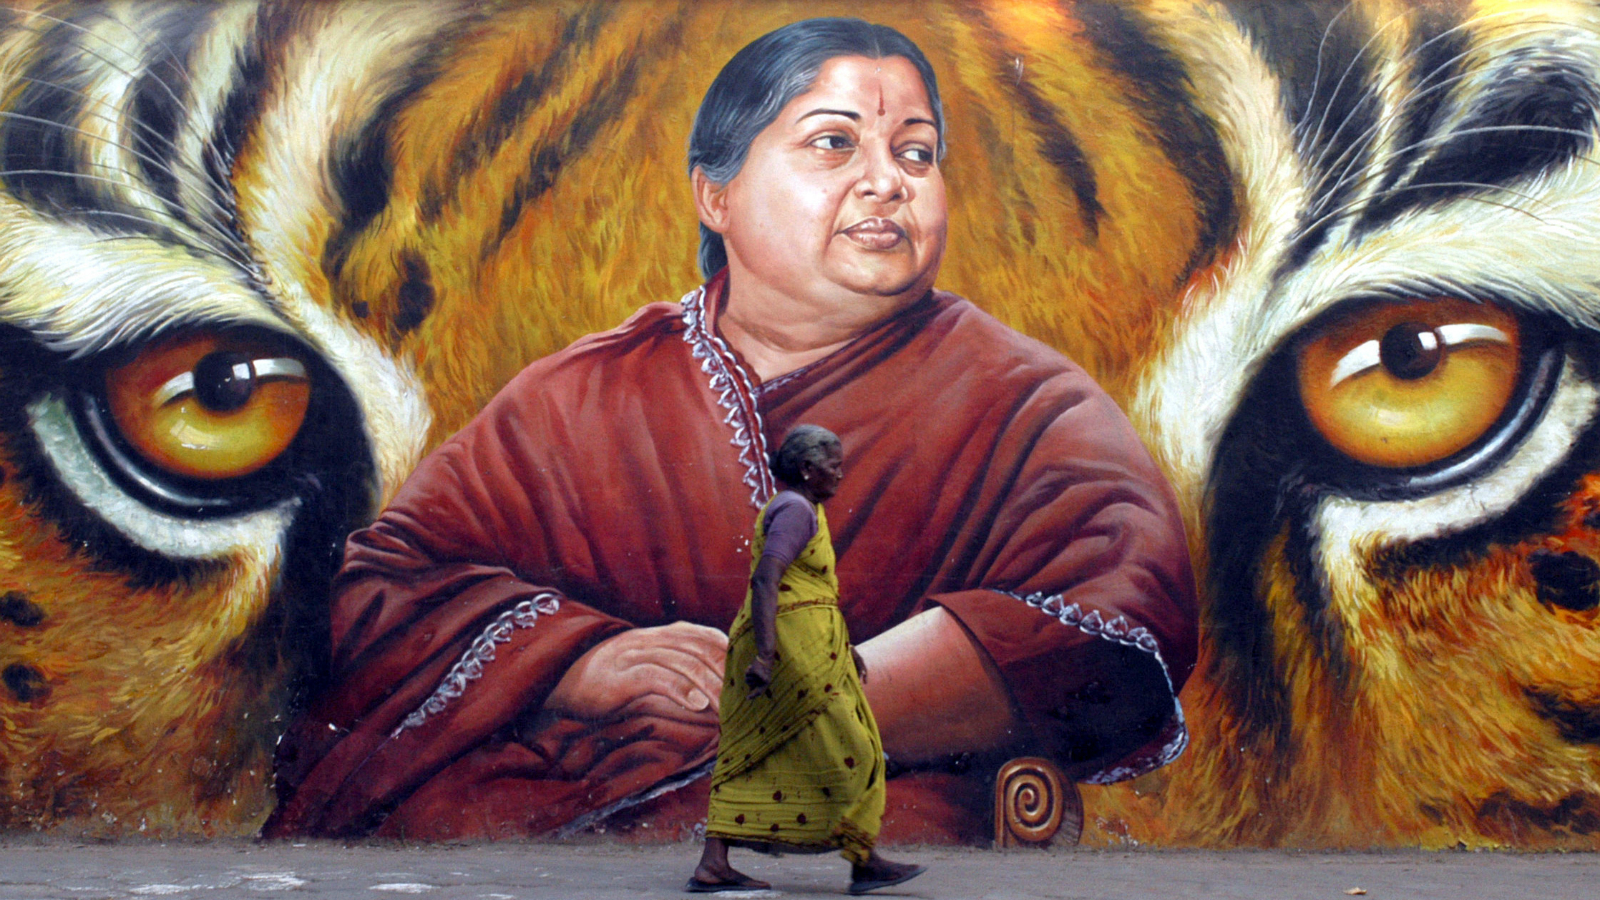 A woman walks in front of a portrait of Jayalalithaa, a former film actress and now head of the state opposition party, the All India Anna Dravida Munnetra Kazhagam (AIADMK), in the southern Indian city of Chennai March 2, 2009. India will hold a general election between April 16 and May 13, election officials said on Monday, kicking off a mammoth process in which 714 million people will be able to cast their votes.